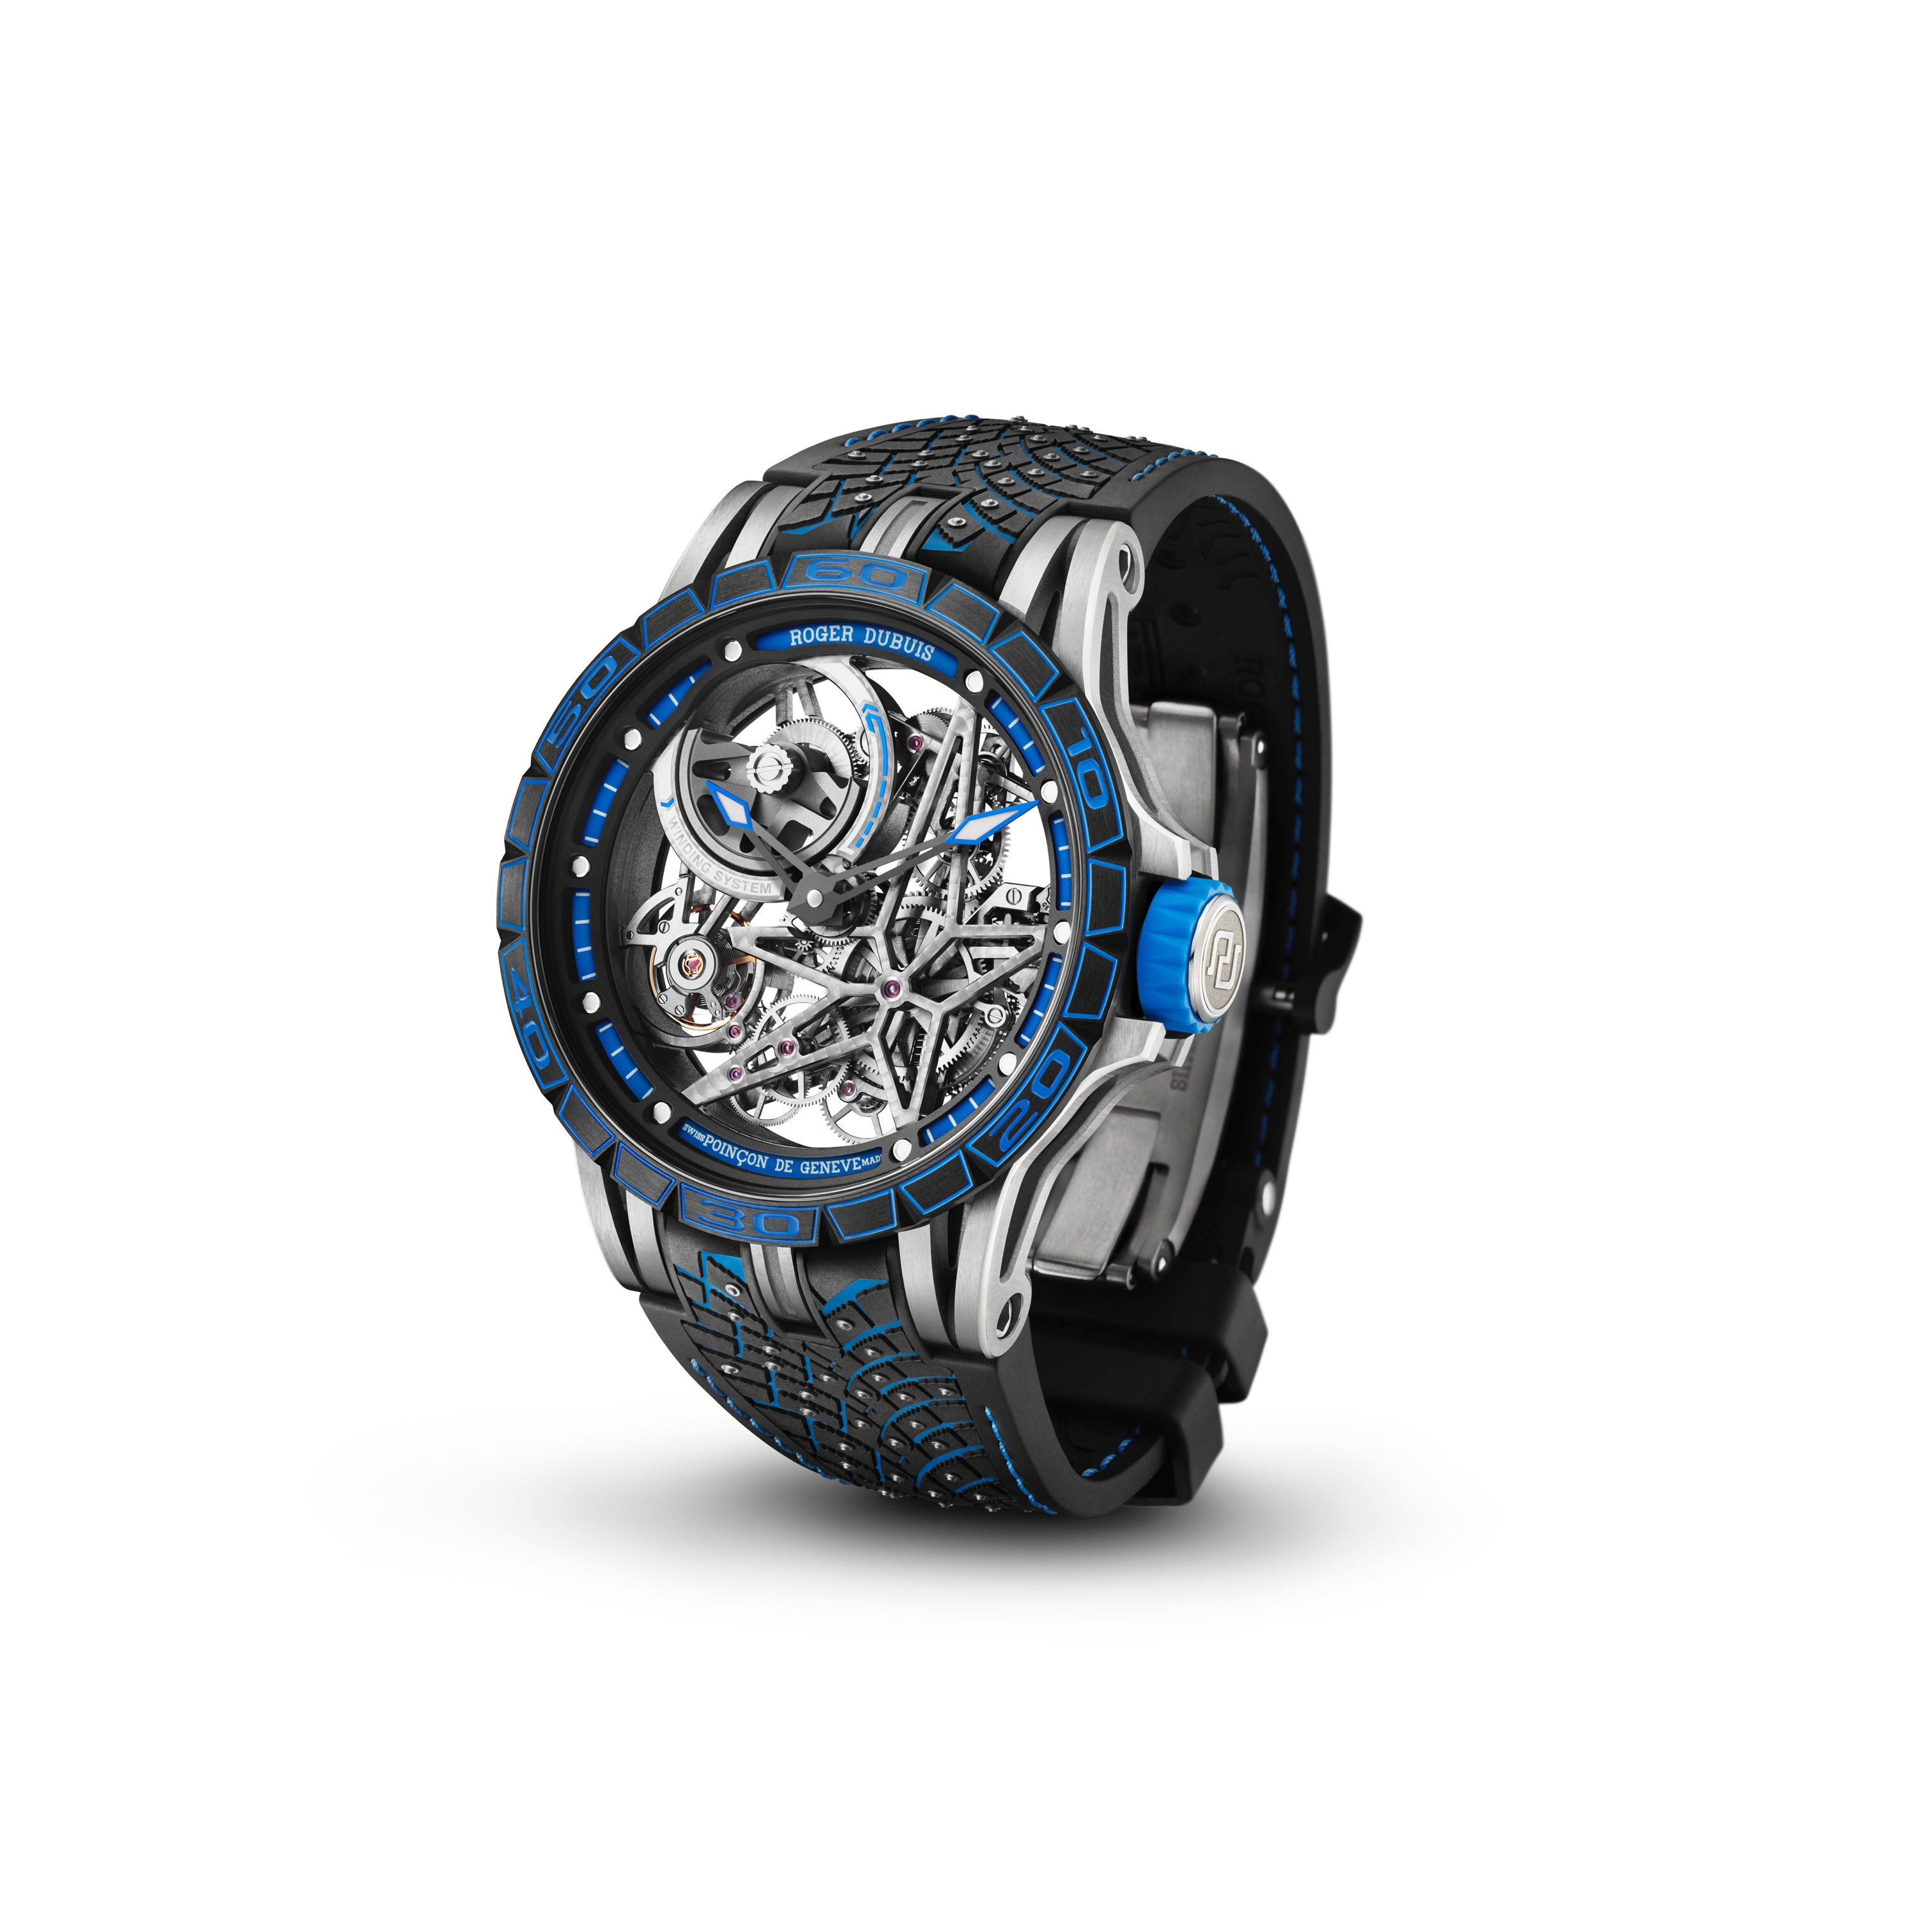 Pirelli Tires, Roger Dubuis, Watches, Vaughn Lowery, 360 Magazine,